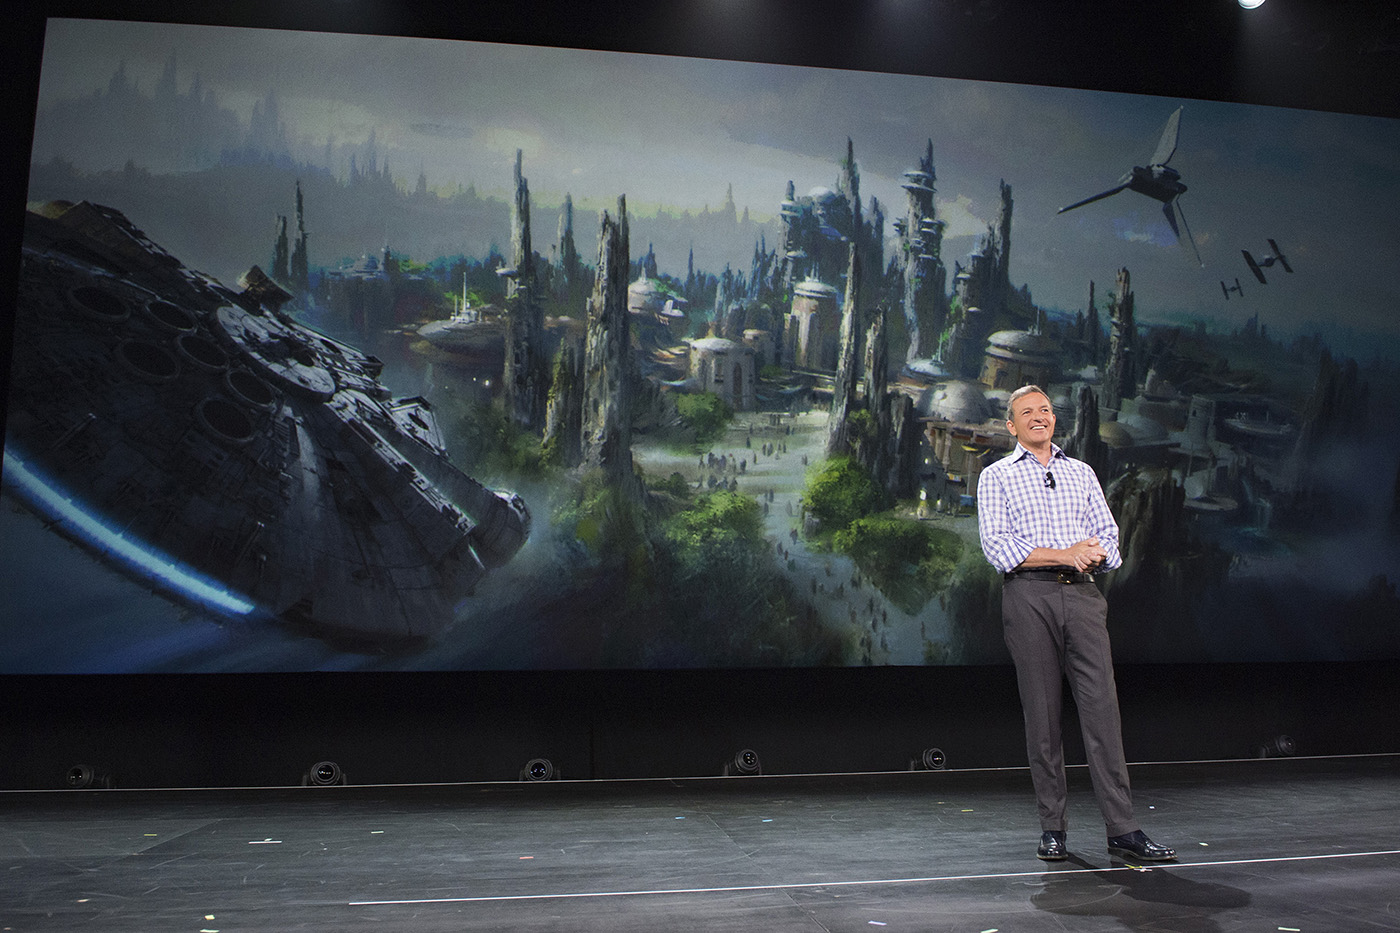 Walt Disney Company Chairman and CEO Bob Iger announced at D23 EXPO 2015 that Star Wars-themed lands will be coming to Disneyland park in Anaheim, Calif., and Disney's Hollywood Studios in Orlando, Fla., creating Disney's largest single-themed land expansions ever at 14-acres each, transporting guests to a never-before-seen planet, a remote trading port and one of the last stops before wild space where Star Wars characters and their stories come to life. These authentic lands will have two signature attractions, including the ability to take the controls of one of the most recognizable ships in the galaxy, the Millennium Falcon, on a customized secret mission, and an epic Star Wars adventure that puts guests in the middle of a climactic battle. (Richard Harbaugh/Disney Parks)